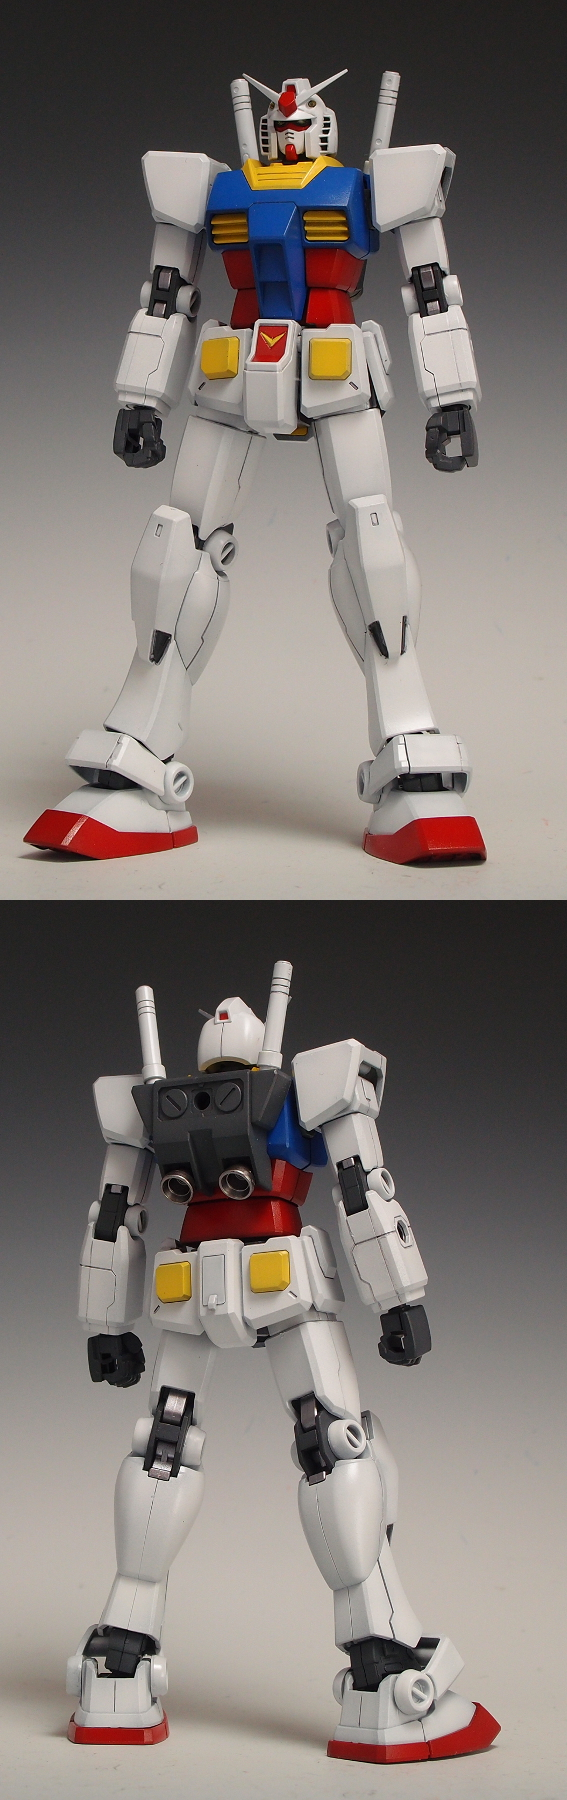 hguc_gundam_revive (1)